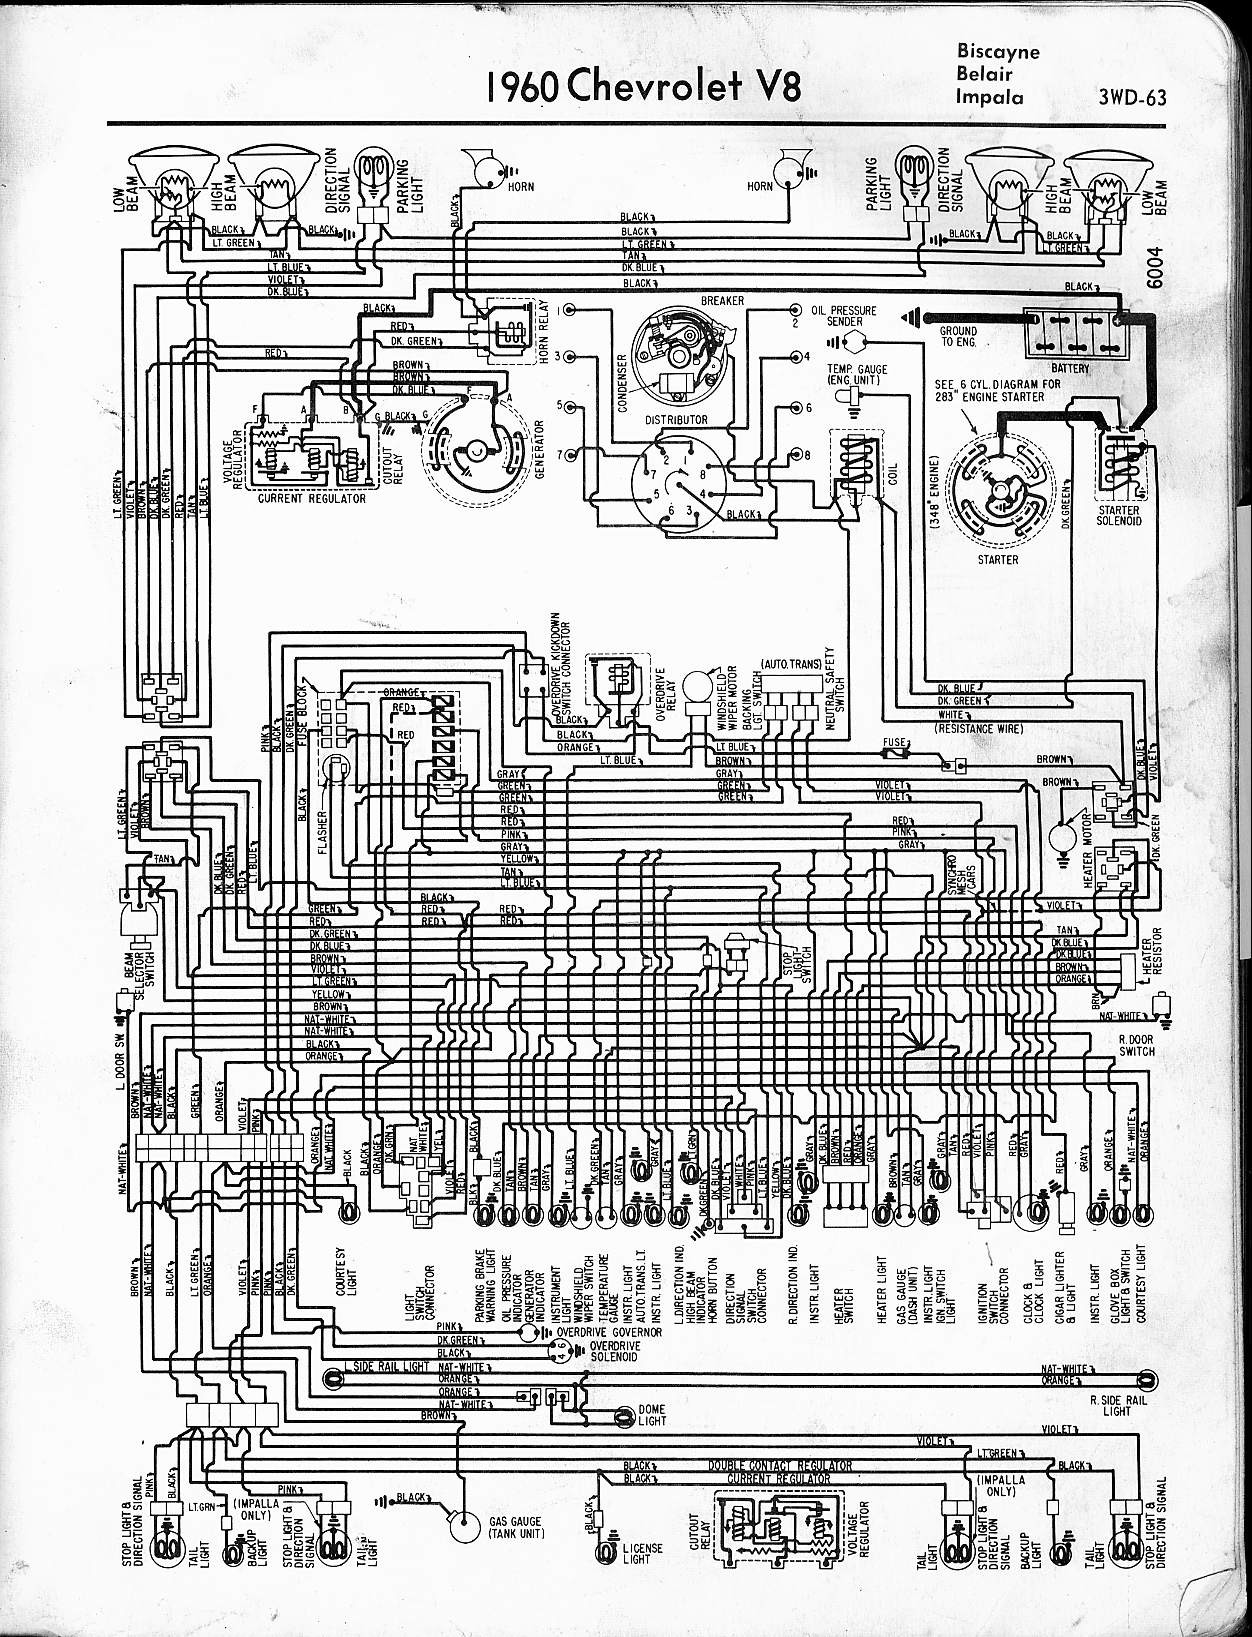 2008 Chevy Impala Wiring Diagram 57 65 Chevy Wiring Diagrams Of 2008 Chevy Impala Wiring Diagram